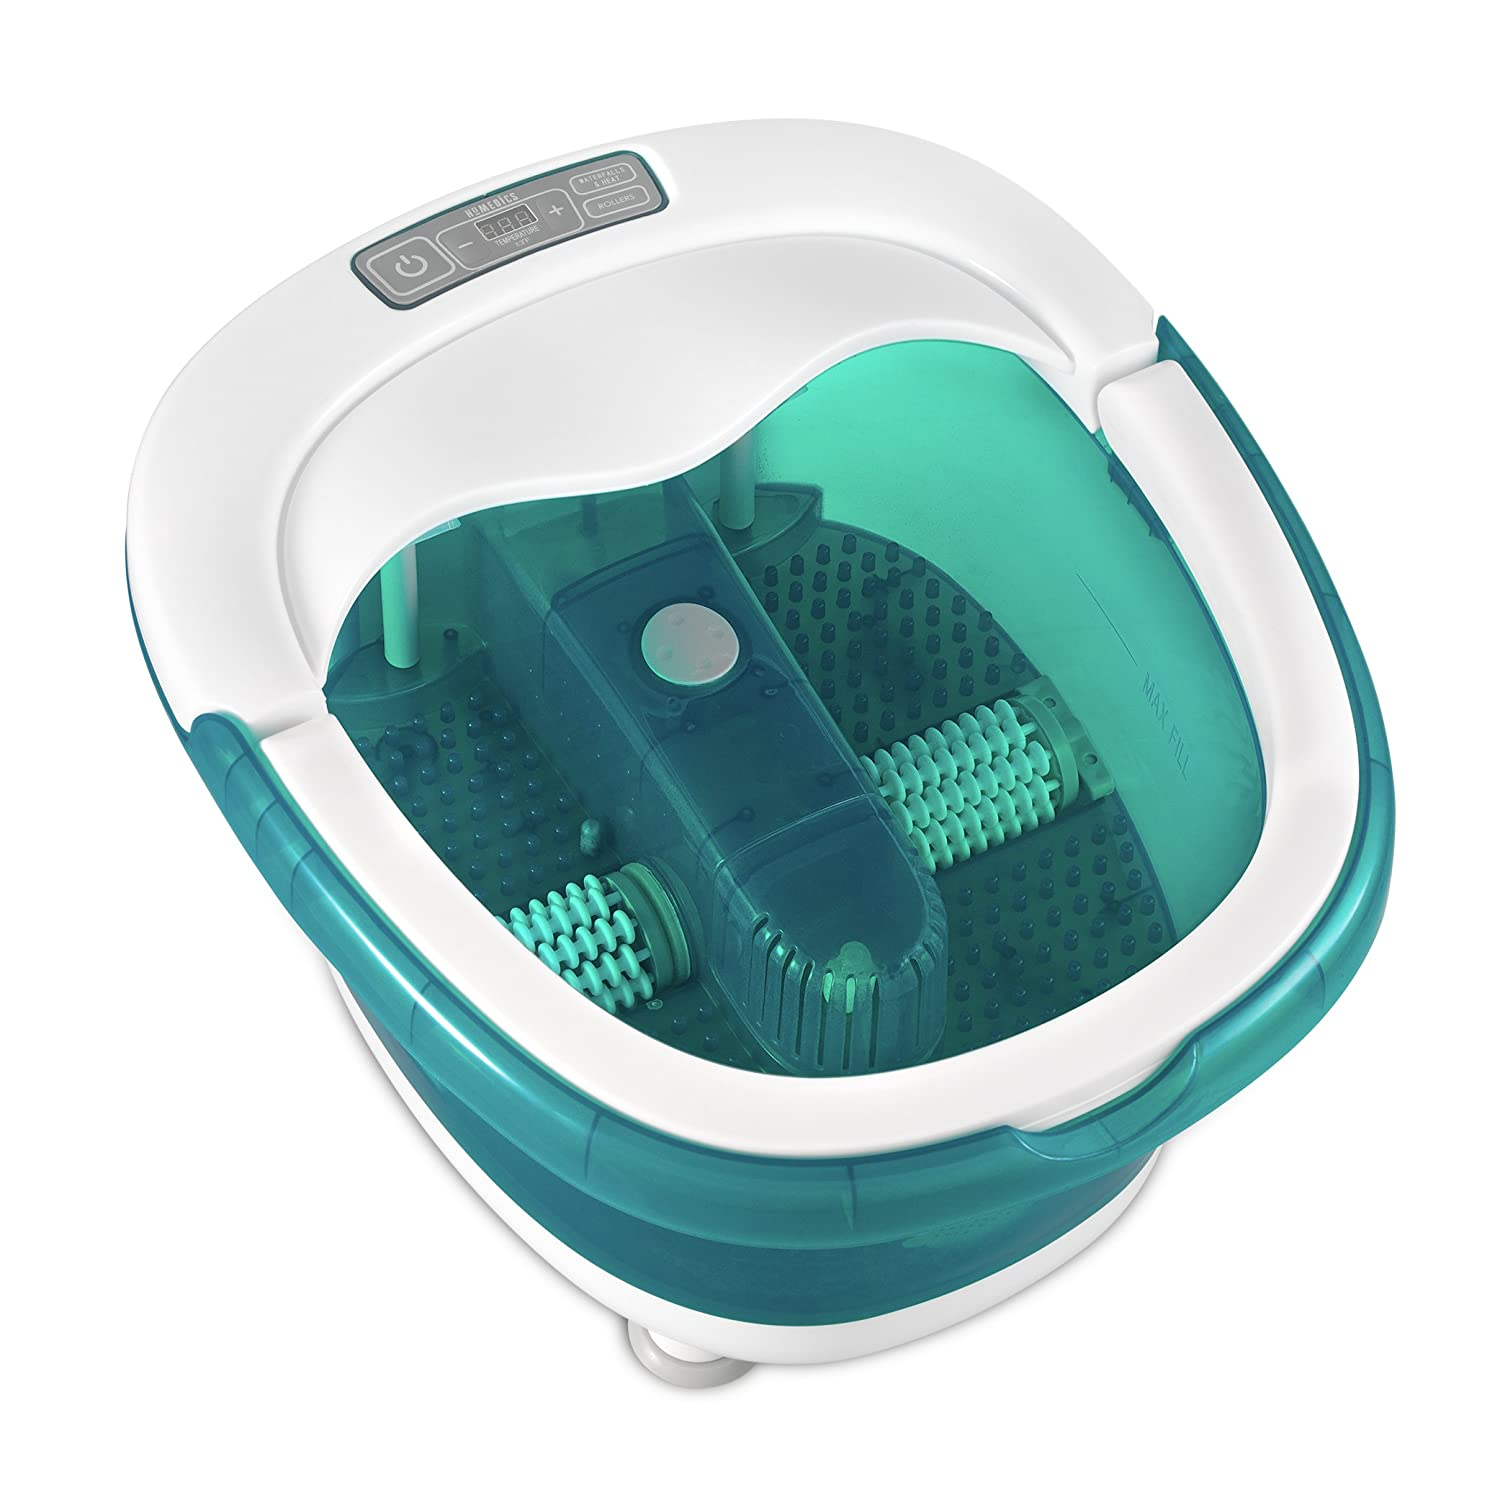 HoMedics, Deep Soak Duo Foot Spa with HeatBoost Power | Deep Rolling Wet/Dry Foot Massager | Dual Motorized Rollers, Waterfall Jets, Built-In Carry Handle, Acu-Node Surface & Optional Heat FB-650